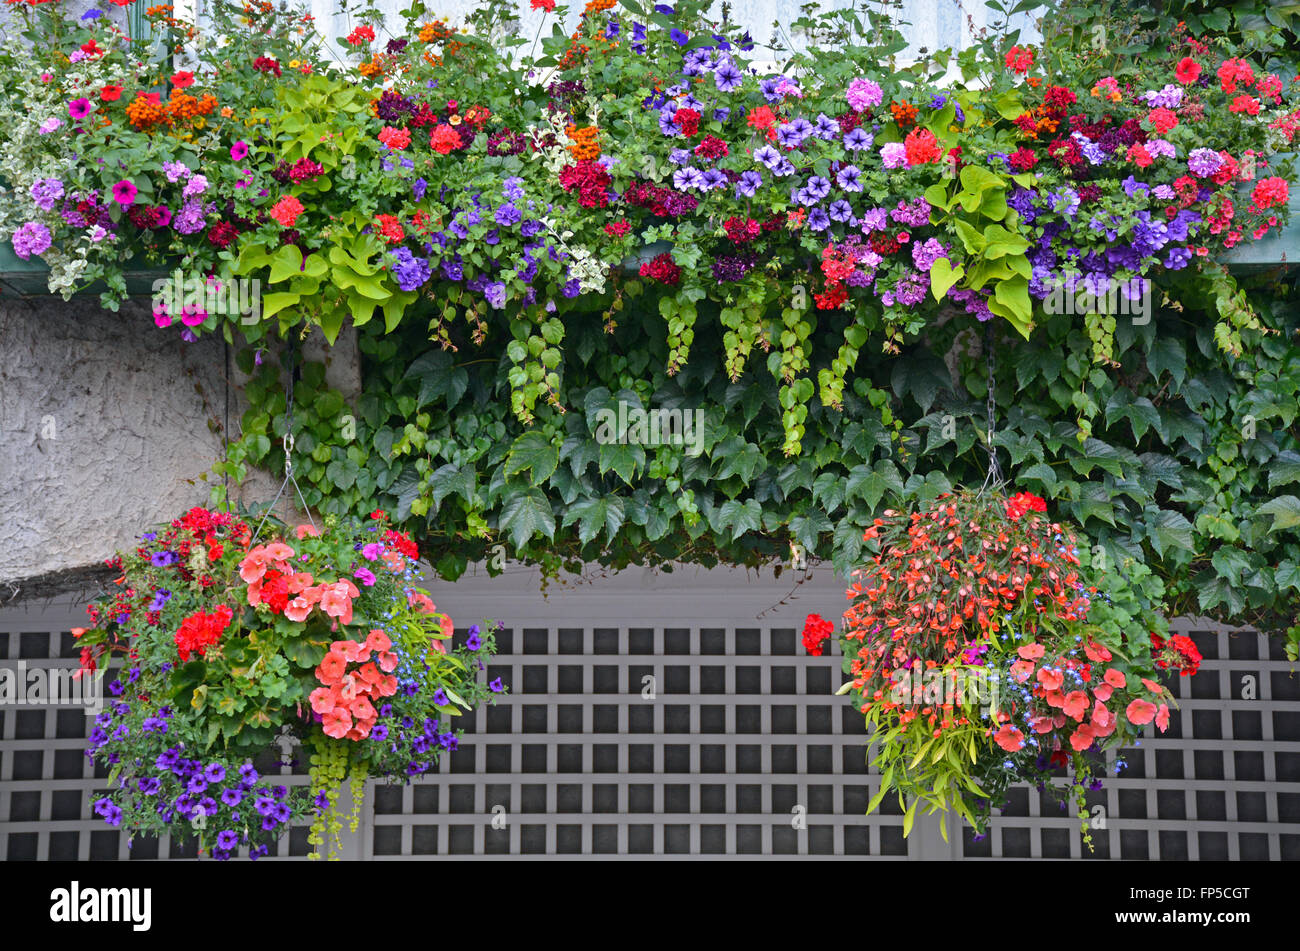 Beautiful Hanging Baskets Filled With A Variety Of Flowers Stock